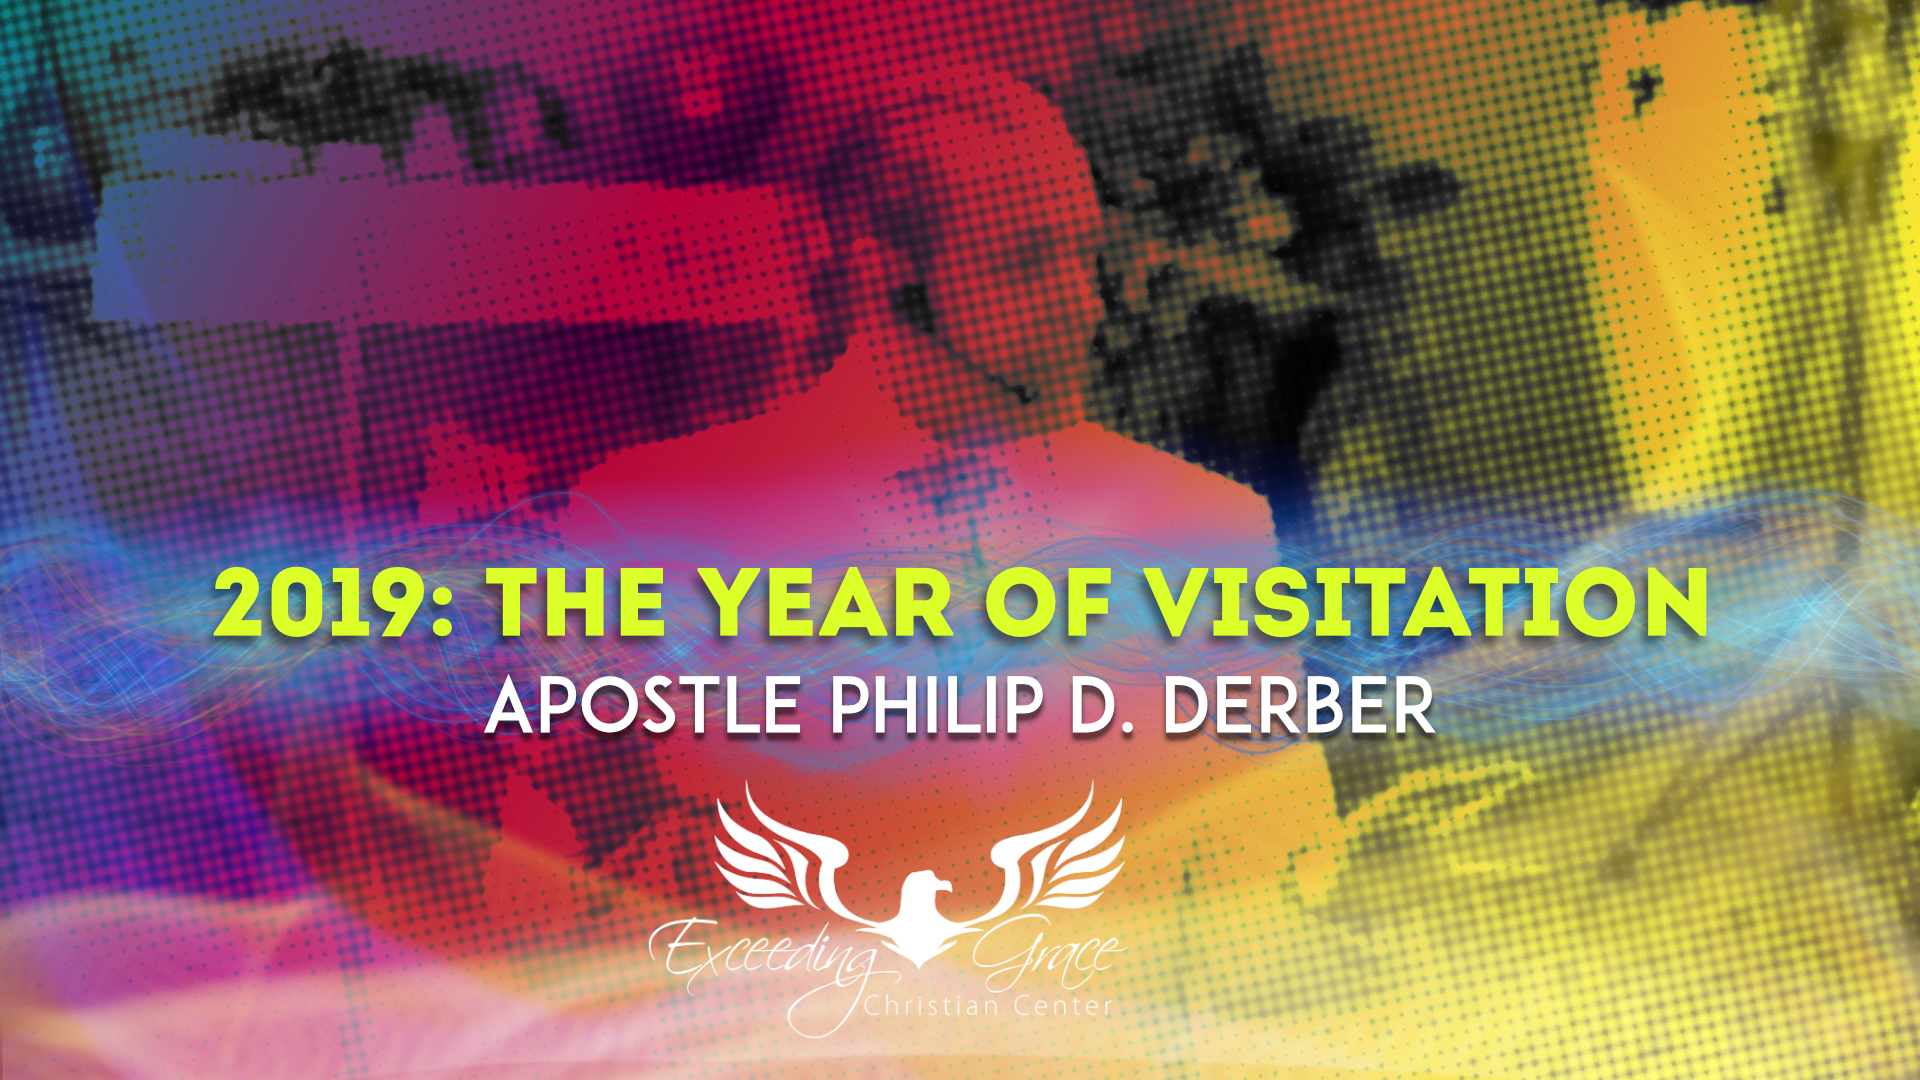 2019 The Year of Visitation